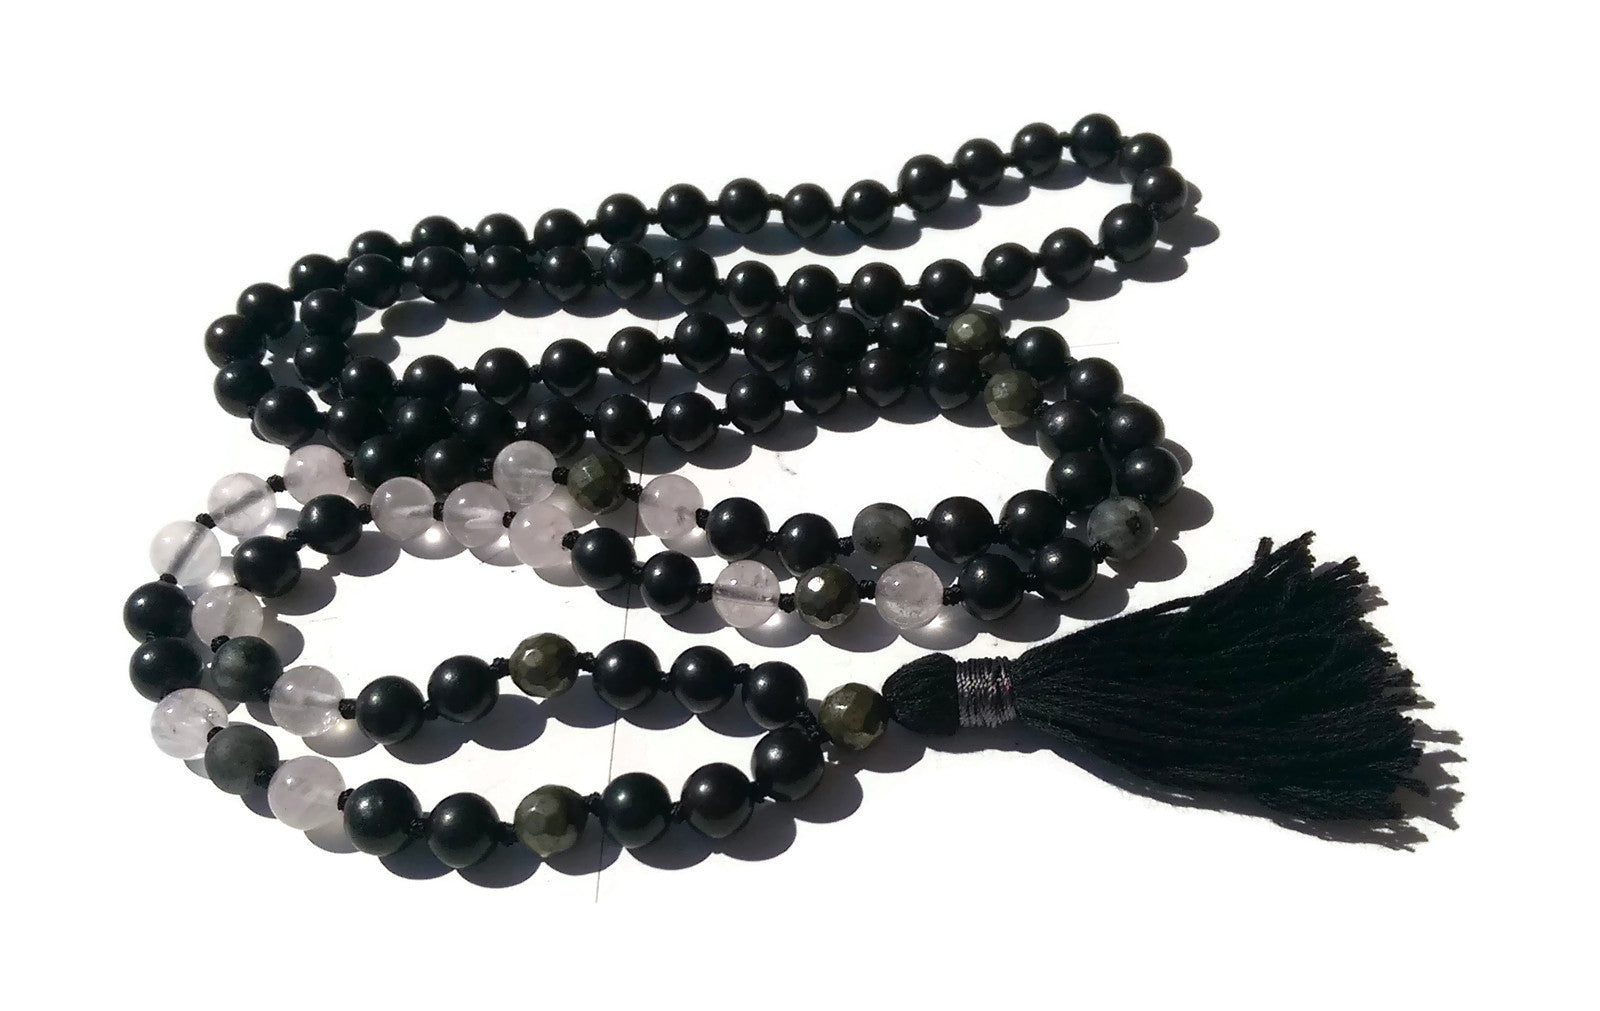 Pure Collection 8mm Ebony Rose Quartz Labradorite Pyrite Traditional Hand Knotted 108 Bead Meditation Mala Necklace Heart Chakra Yoga Focus